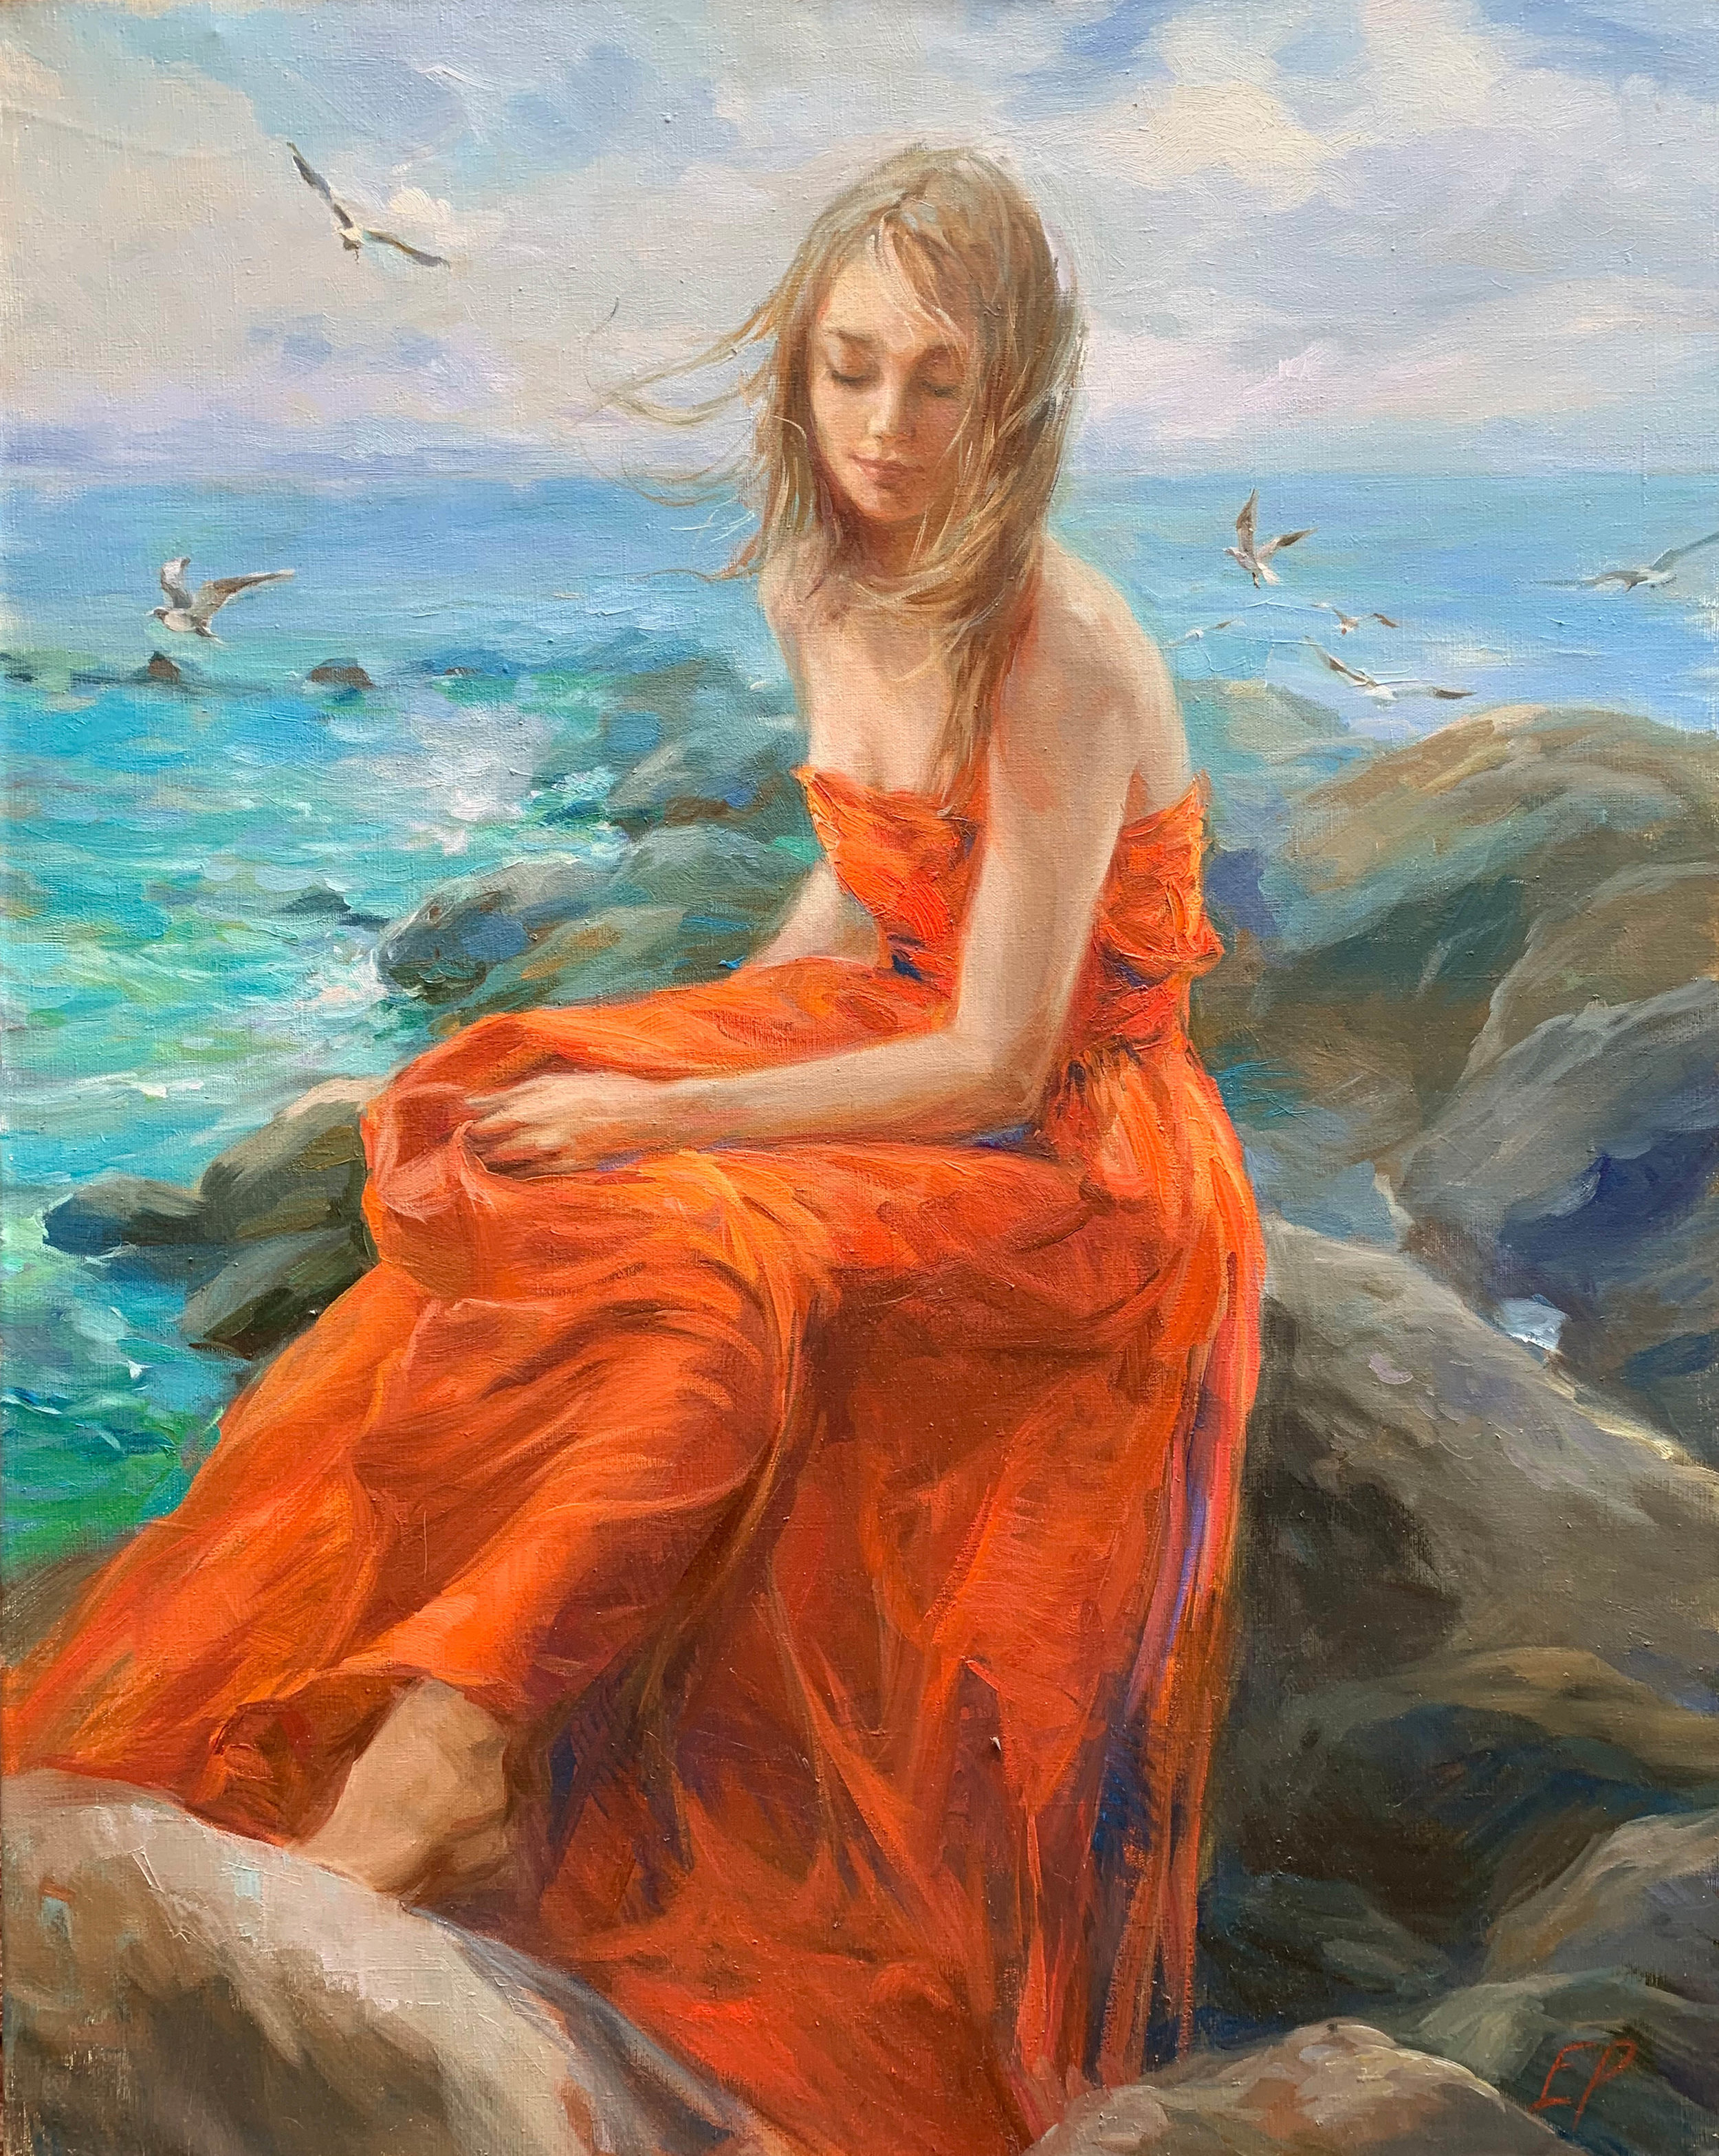 GIRL BY THE SEA  oil, 31.5 x 39.5 in.